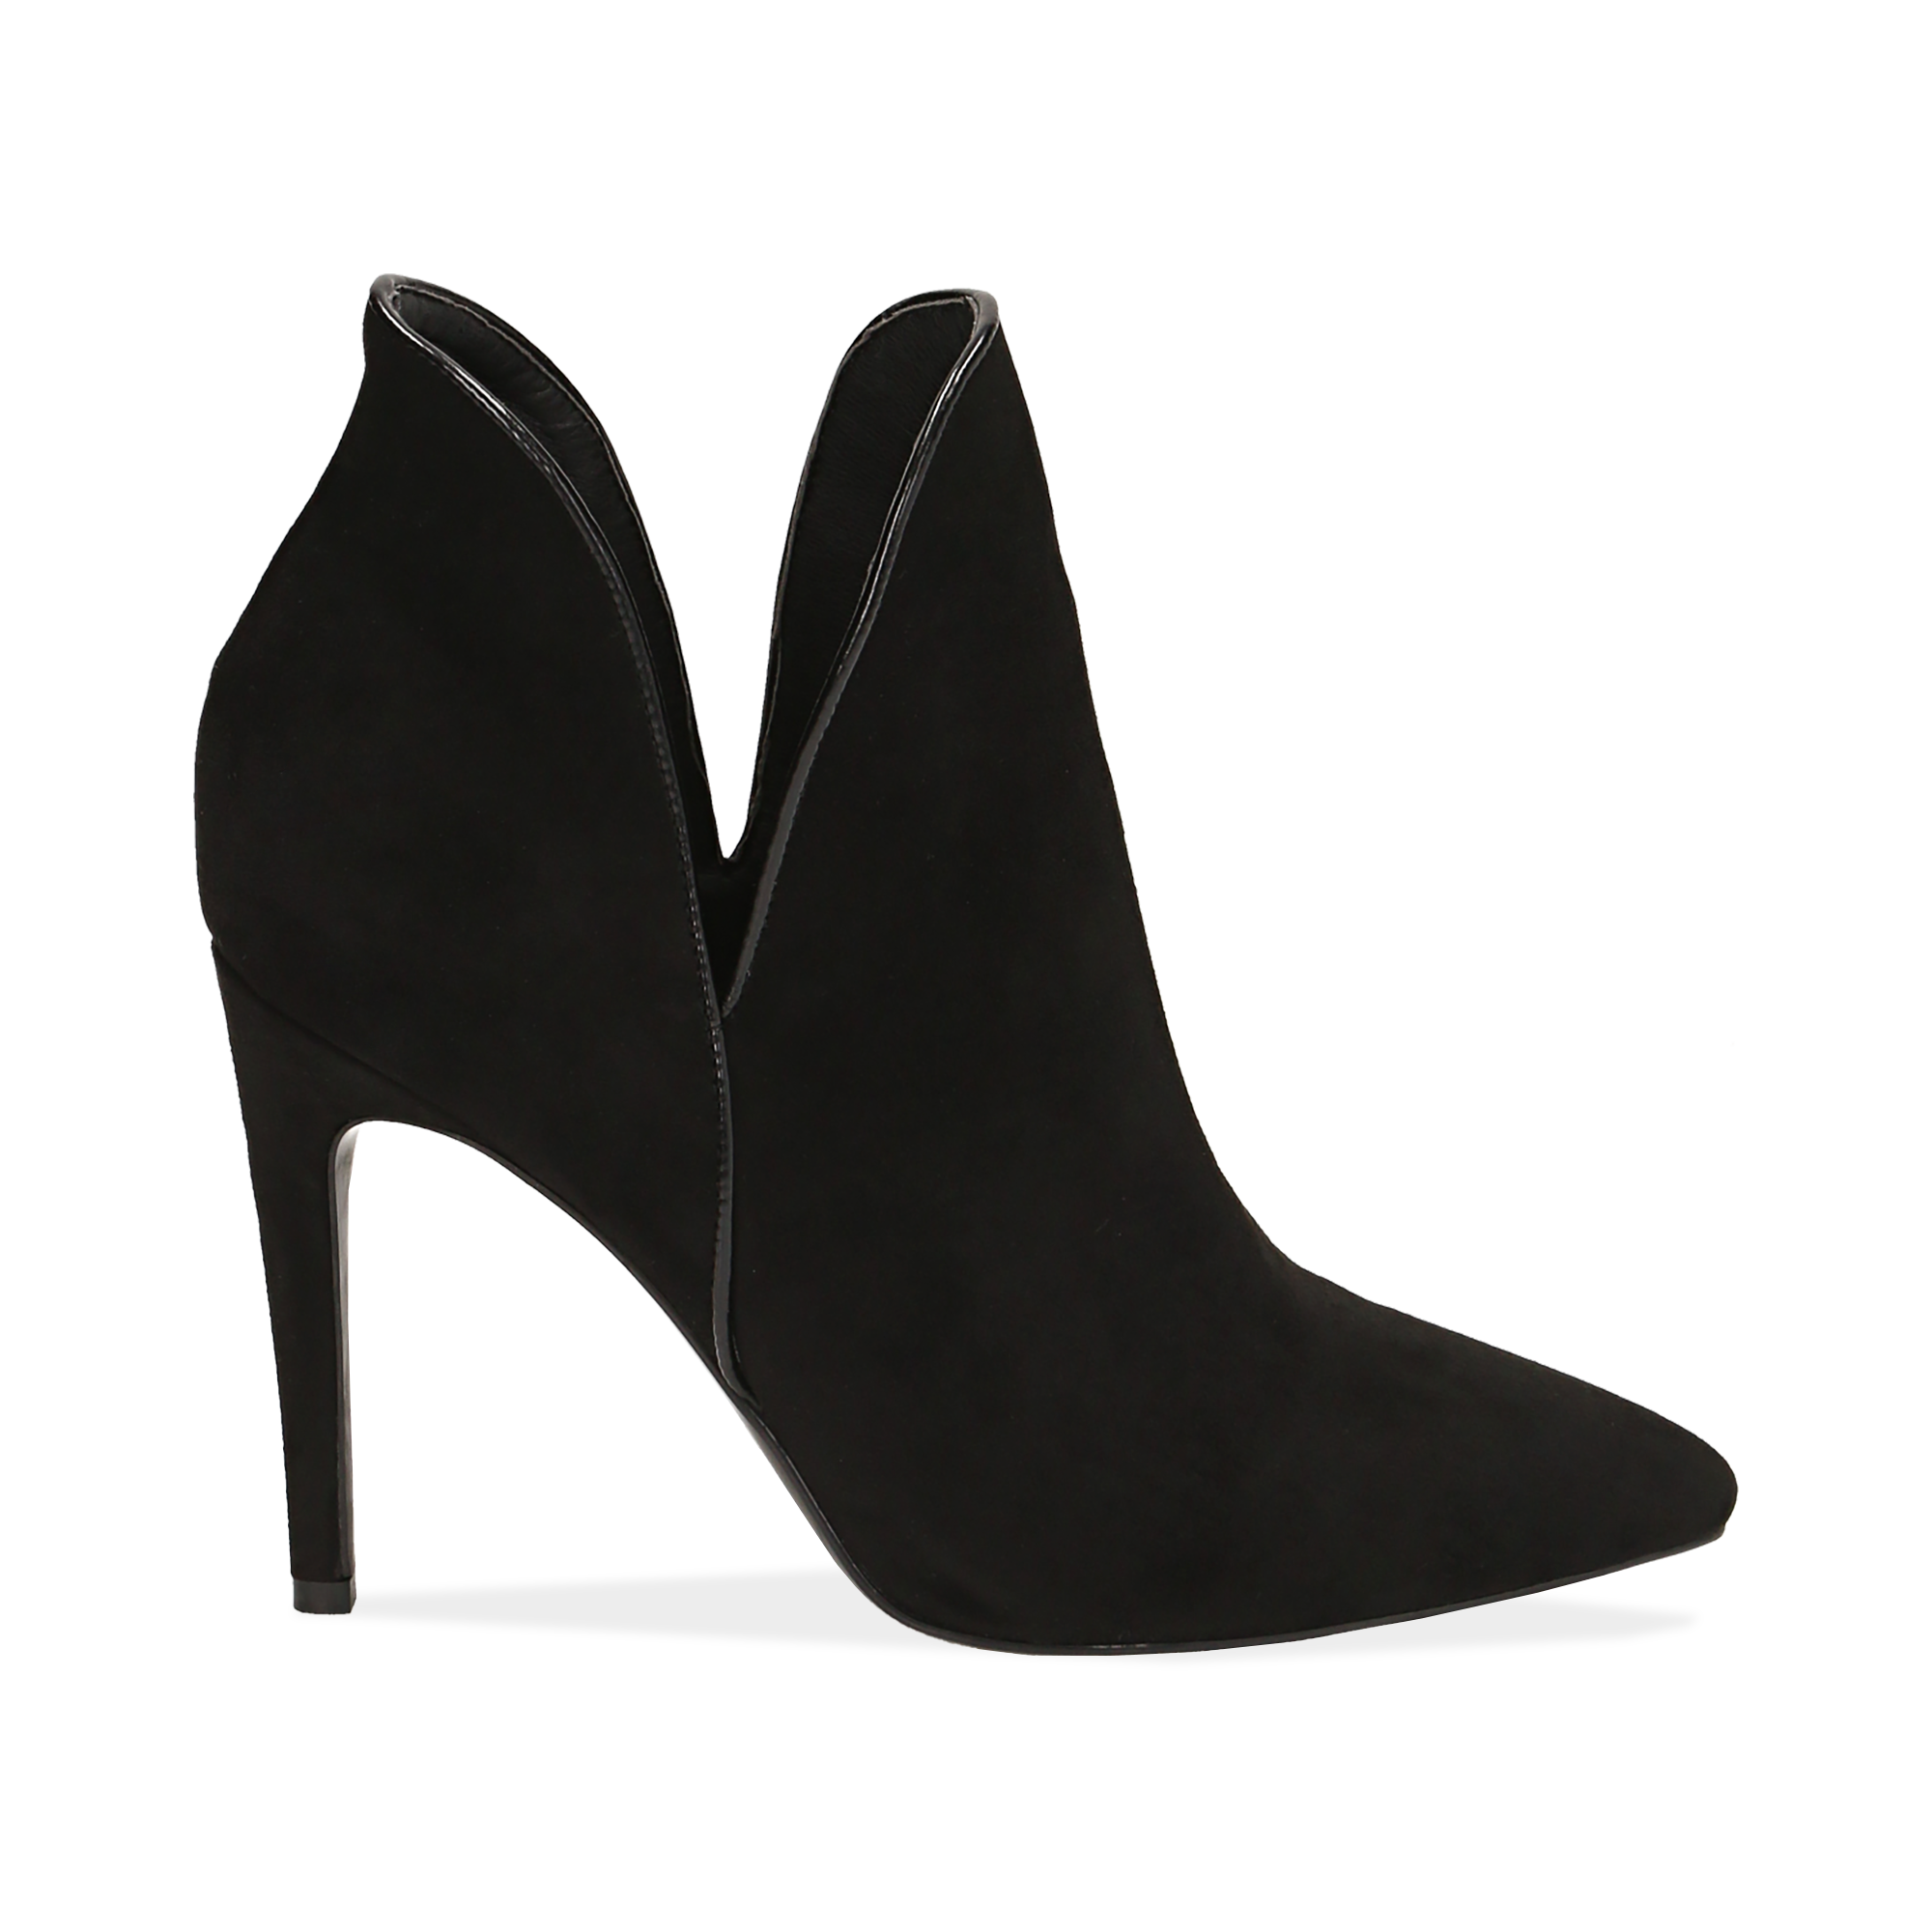 Ankle boots neri in microfibra, tacco 10,50 cm